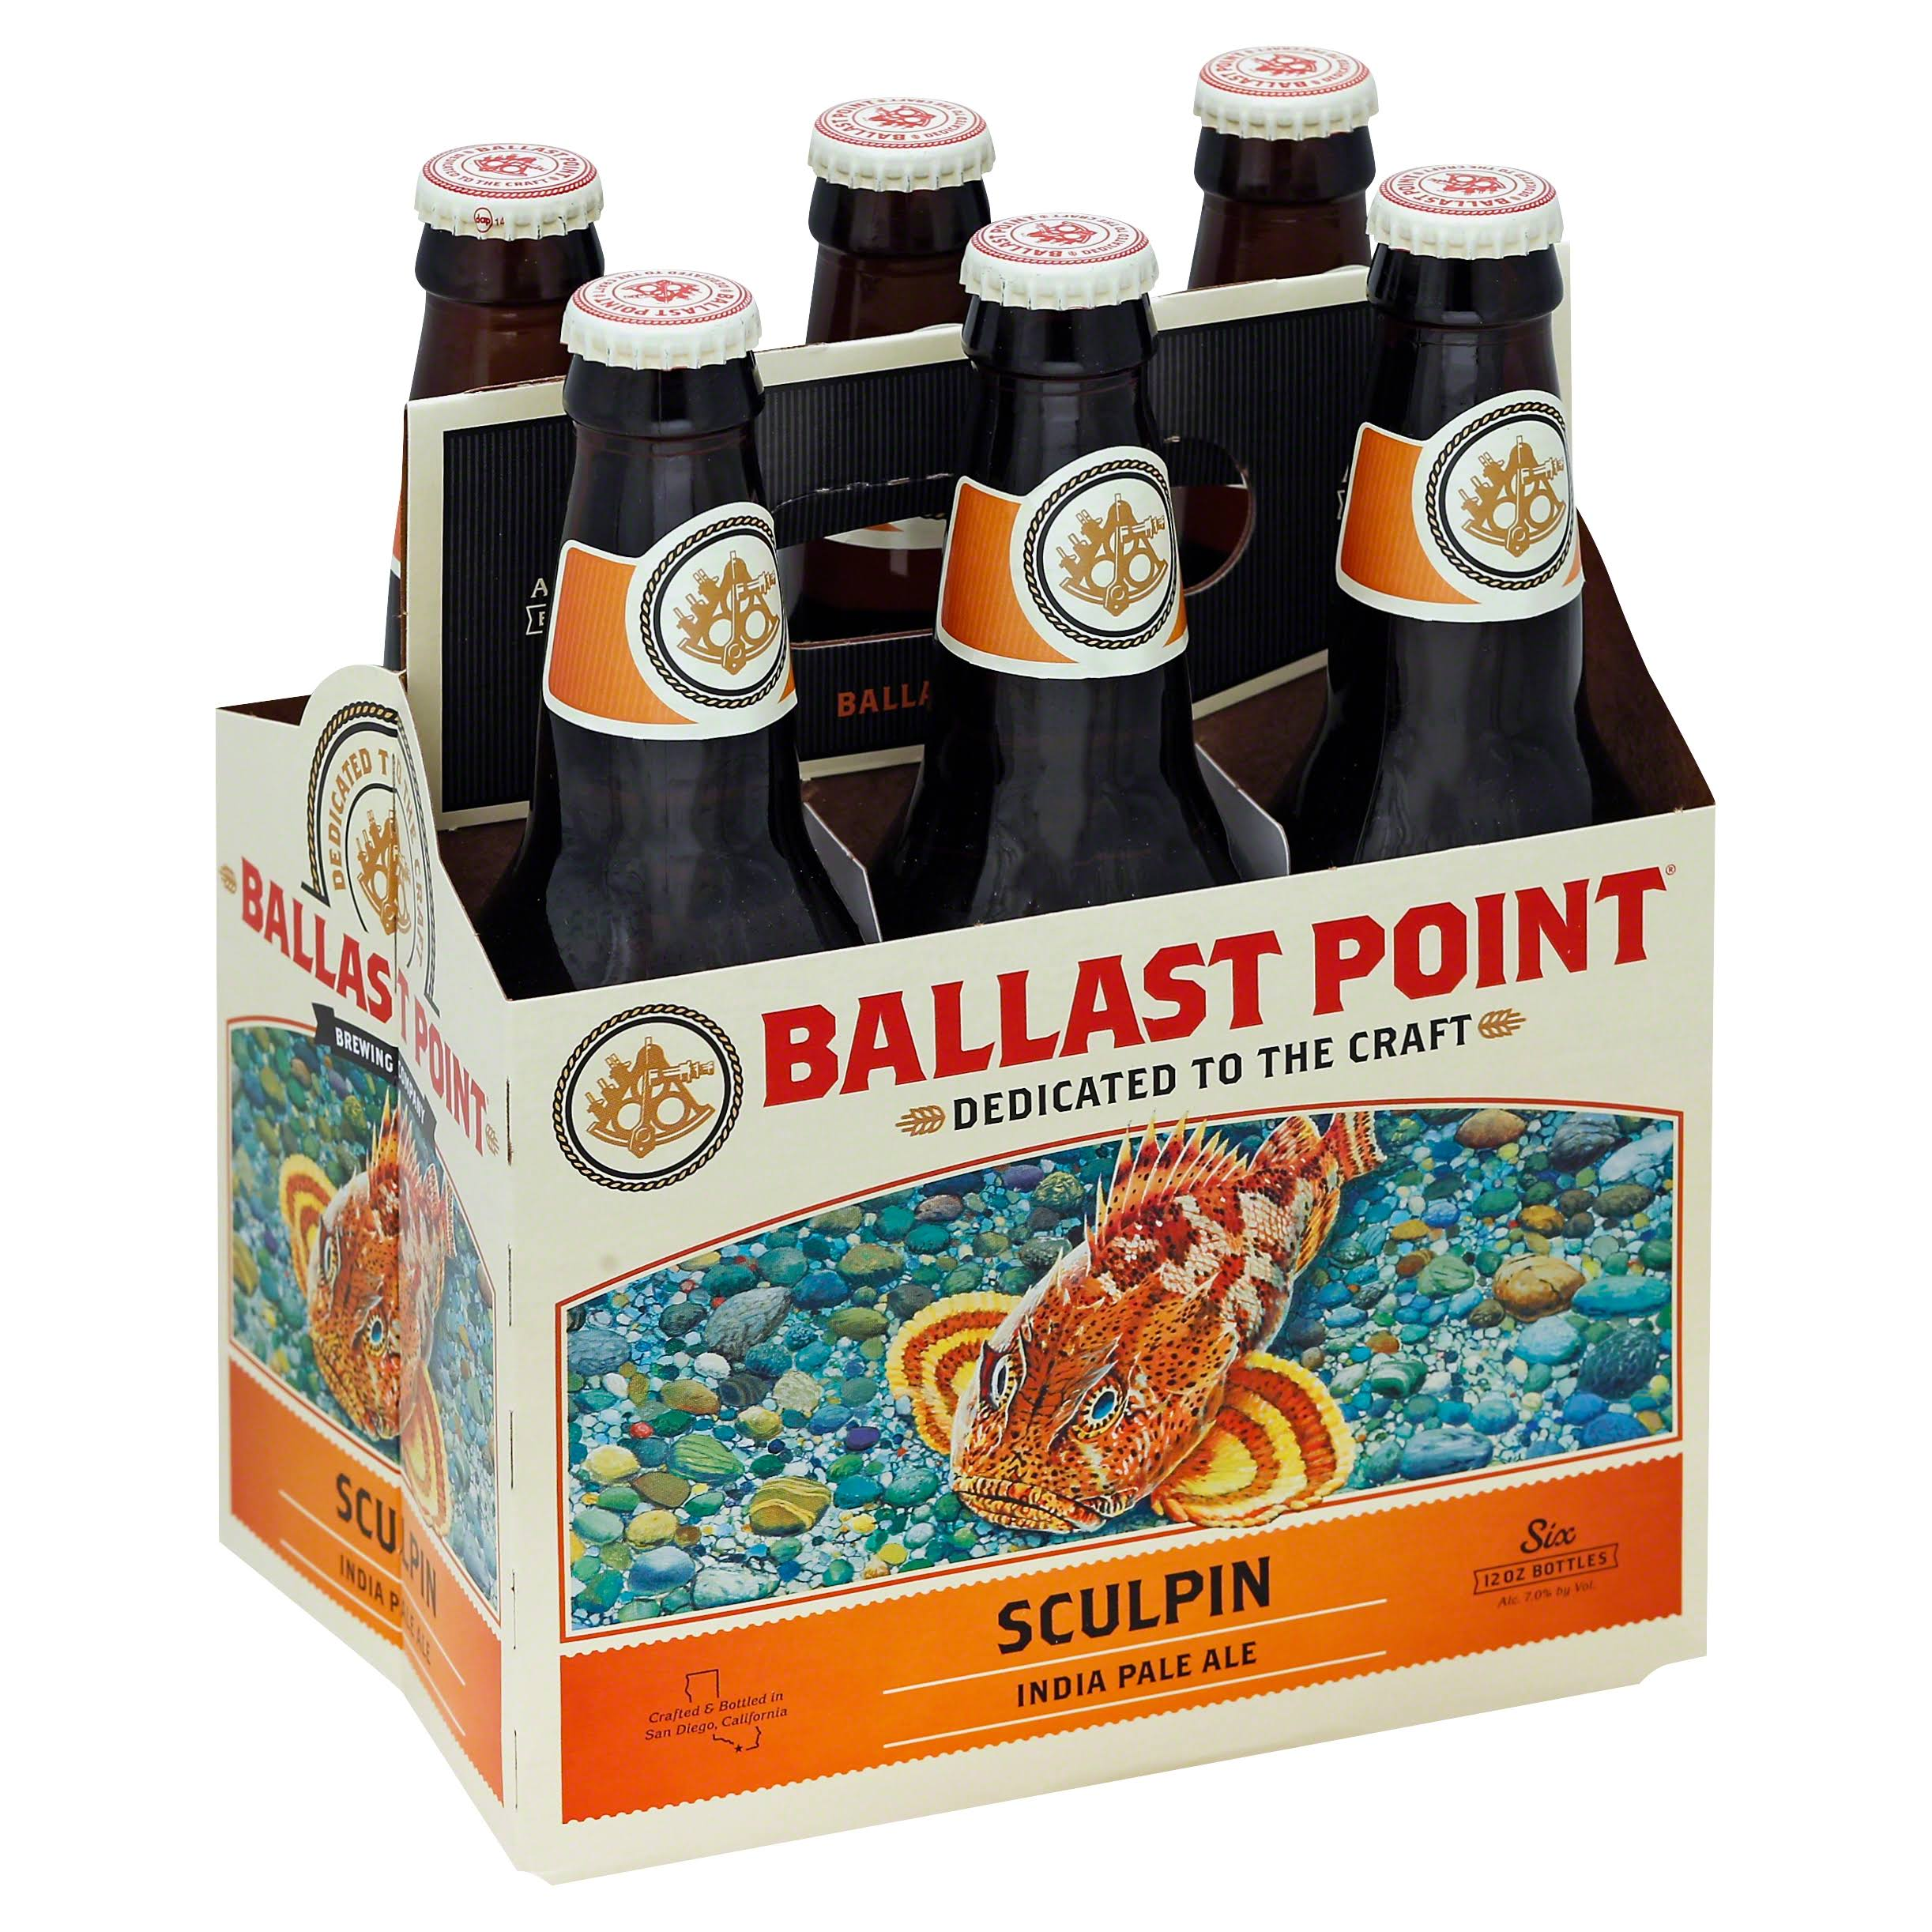 Ballast Point Beer, India Pale Ale, Sculpin - six - 12 oz bottles